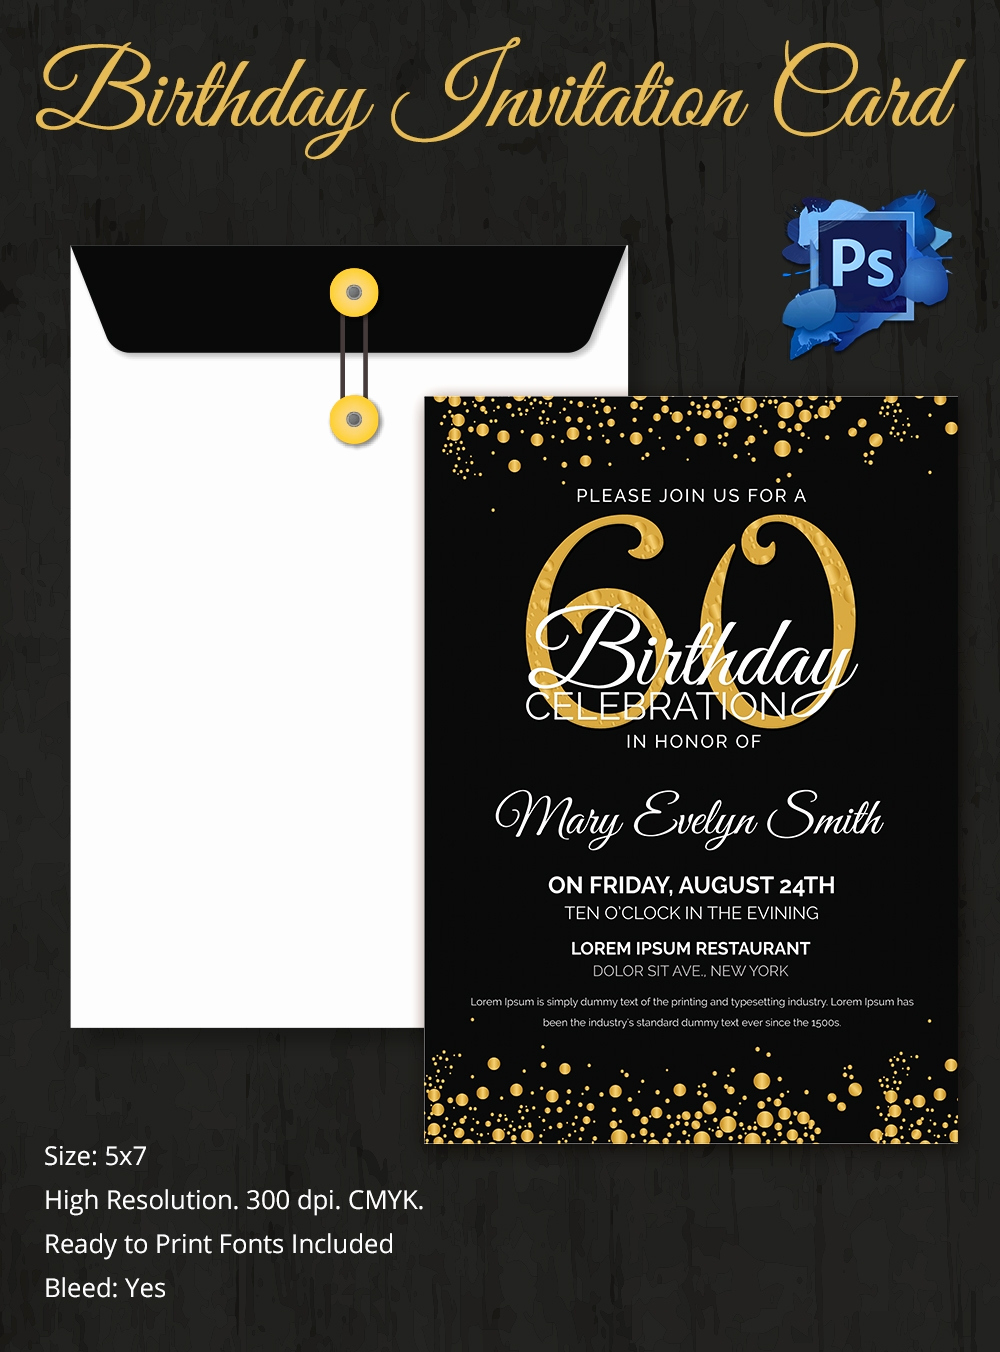 Free Birthday Party Invitation Template Best Of Birthday Invitation Template 32 Free Word Pdf Psd Ai